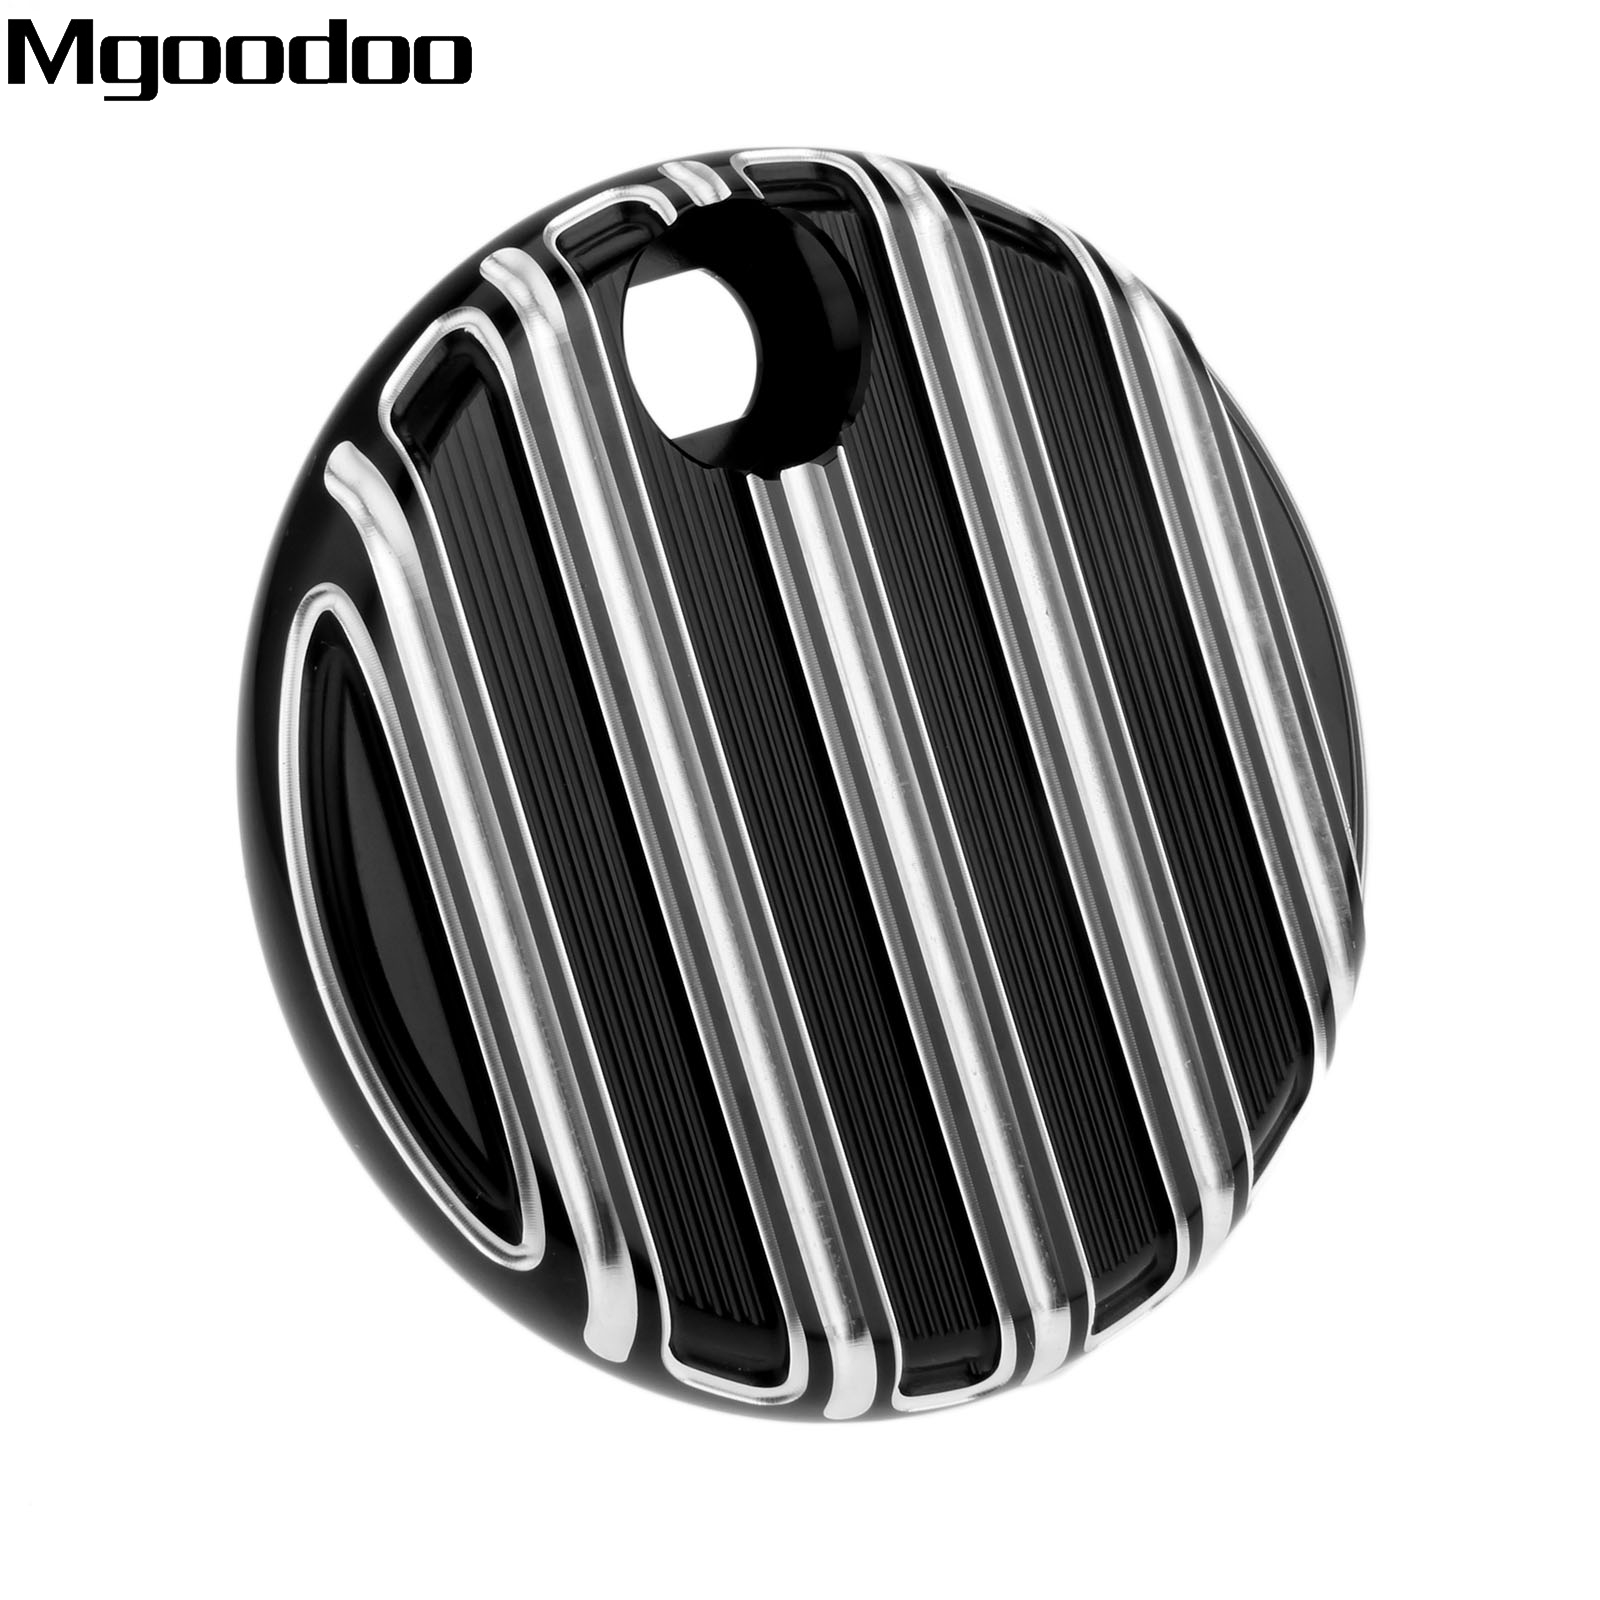 Black Aluminum Motorcycle Fuel Tank Cover Console Door Cover Fuel Cap Deep Cut For Harley Touring FLHX / FLTR / FLHT 2008-2016 brand new motorcycle cnc rc fuel tank gas cap fit for 1996 2014 harley sportster dyna touring softtail